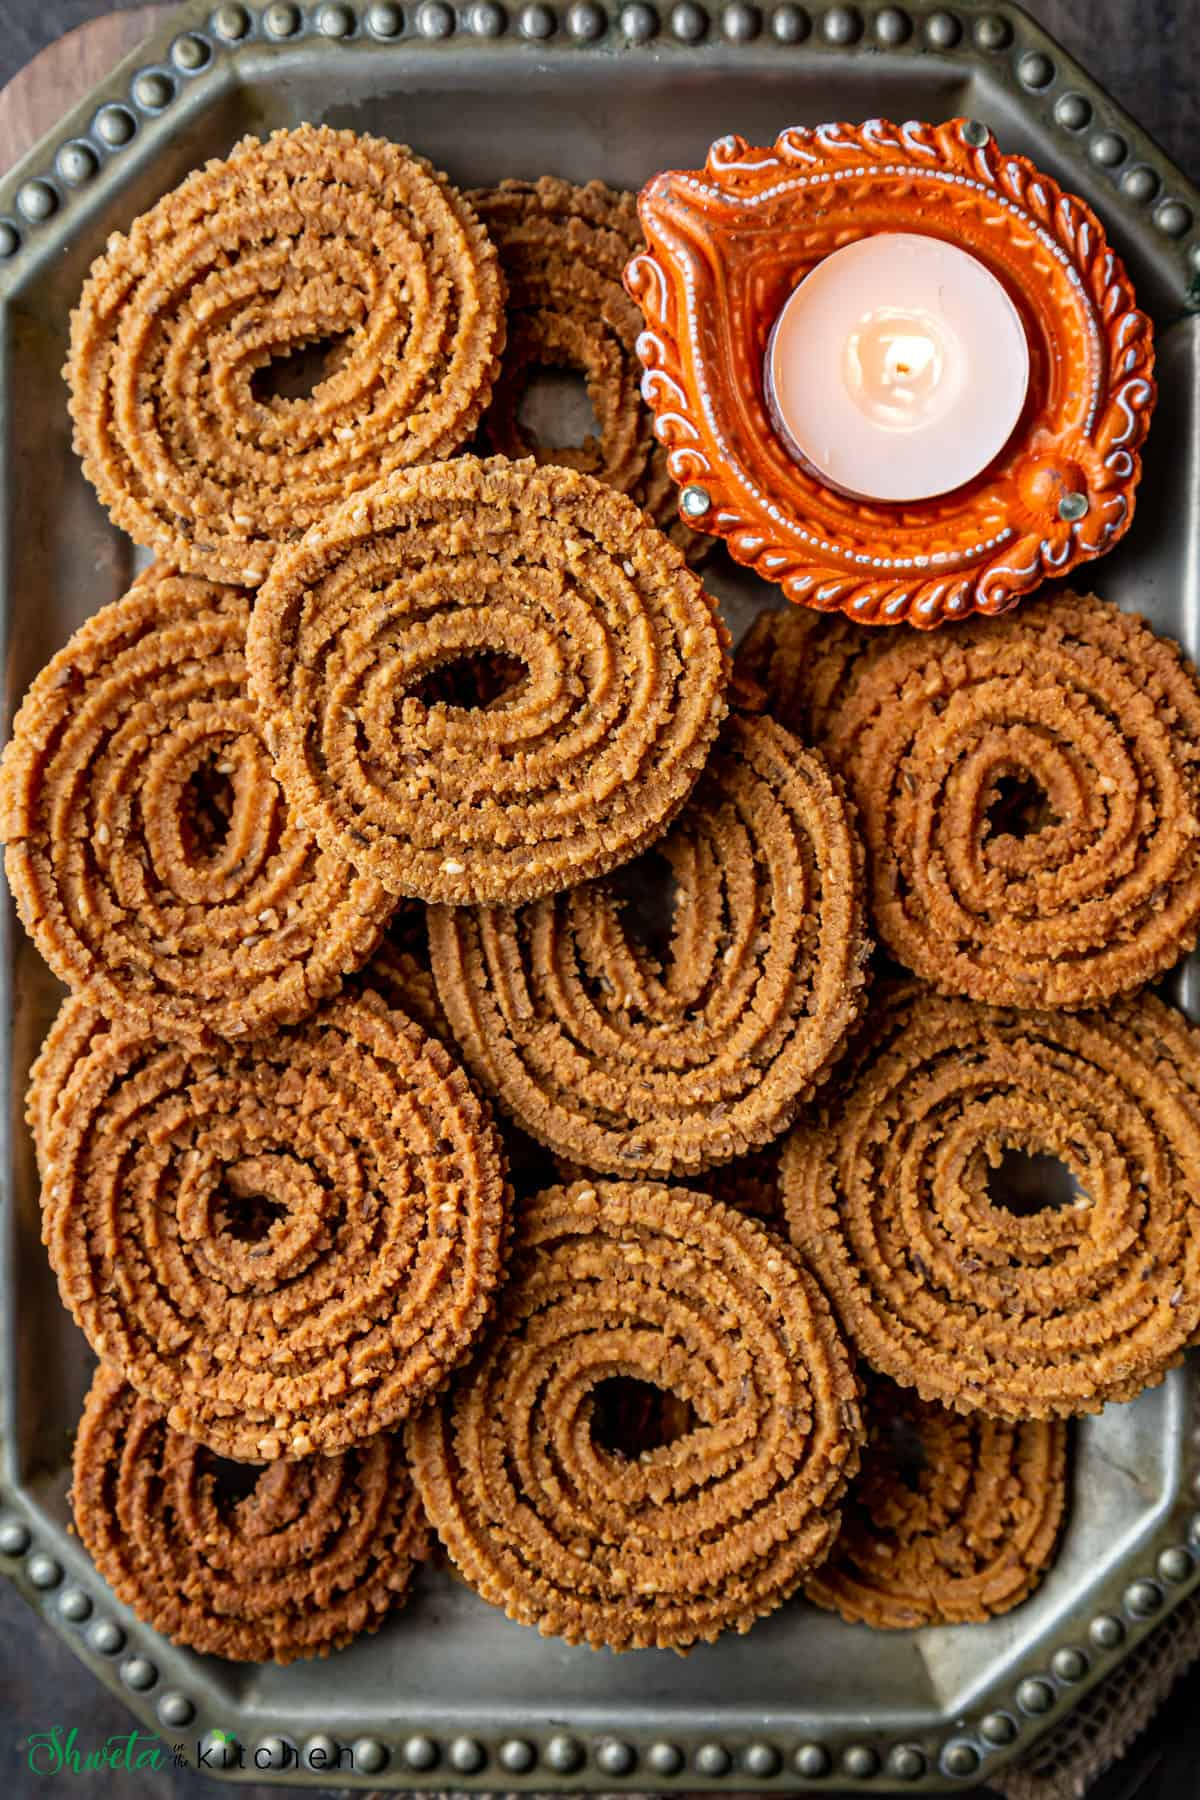 Chakalis on plate with Diwali lamp in one corner.